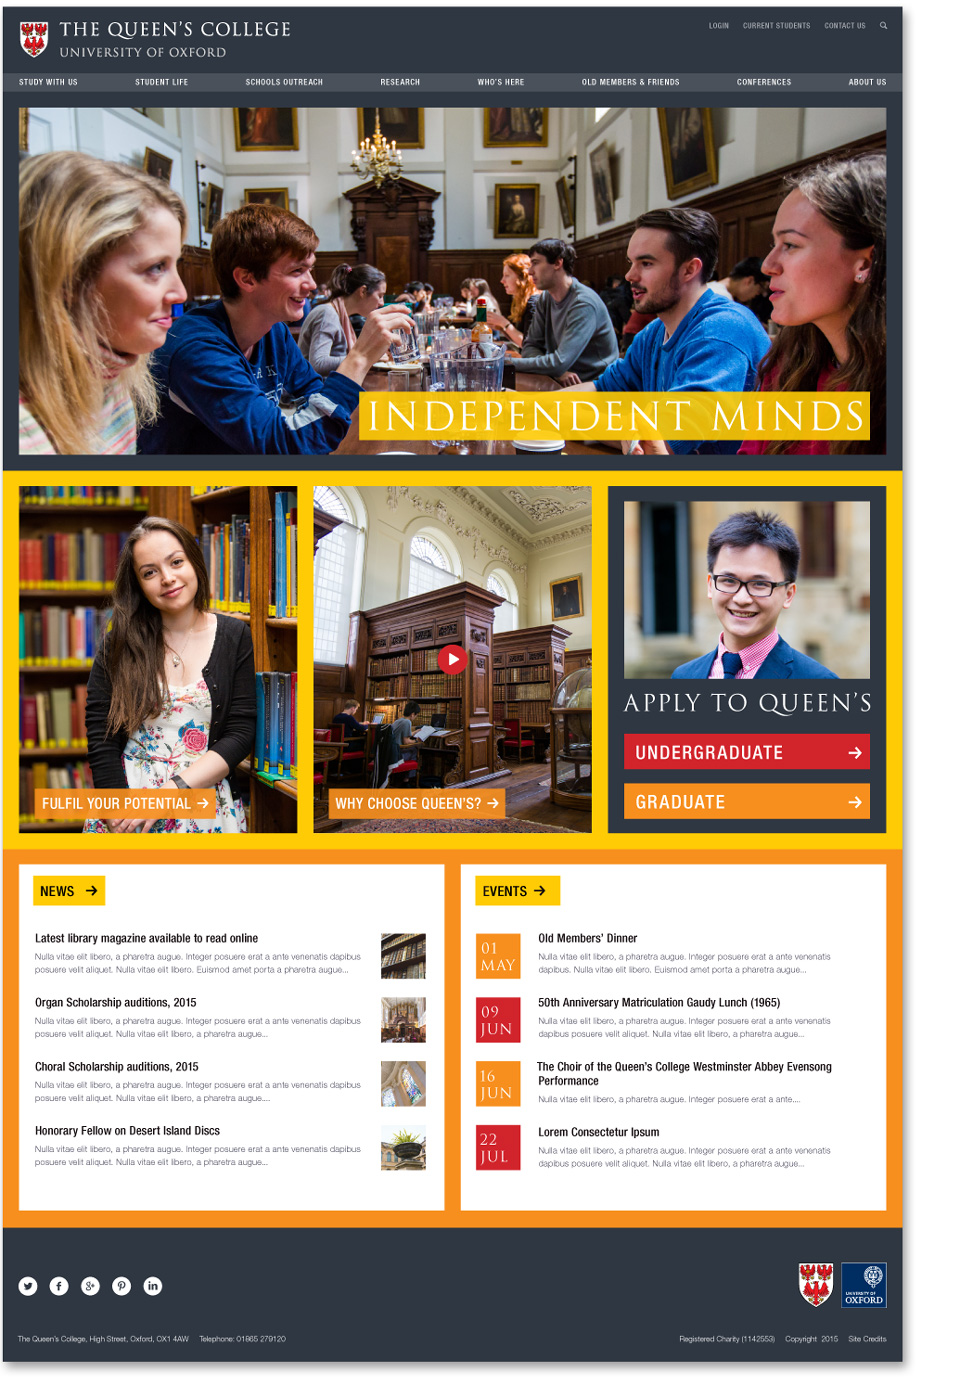 Queen's College homepage design